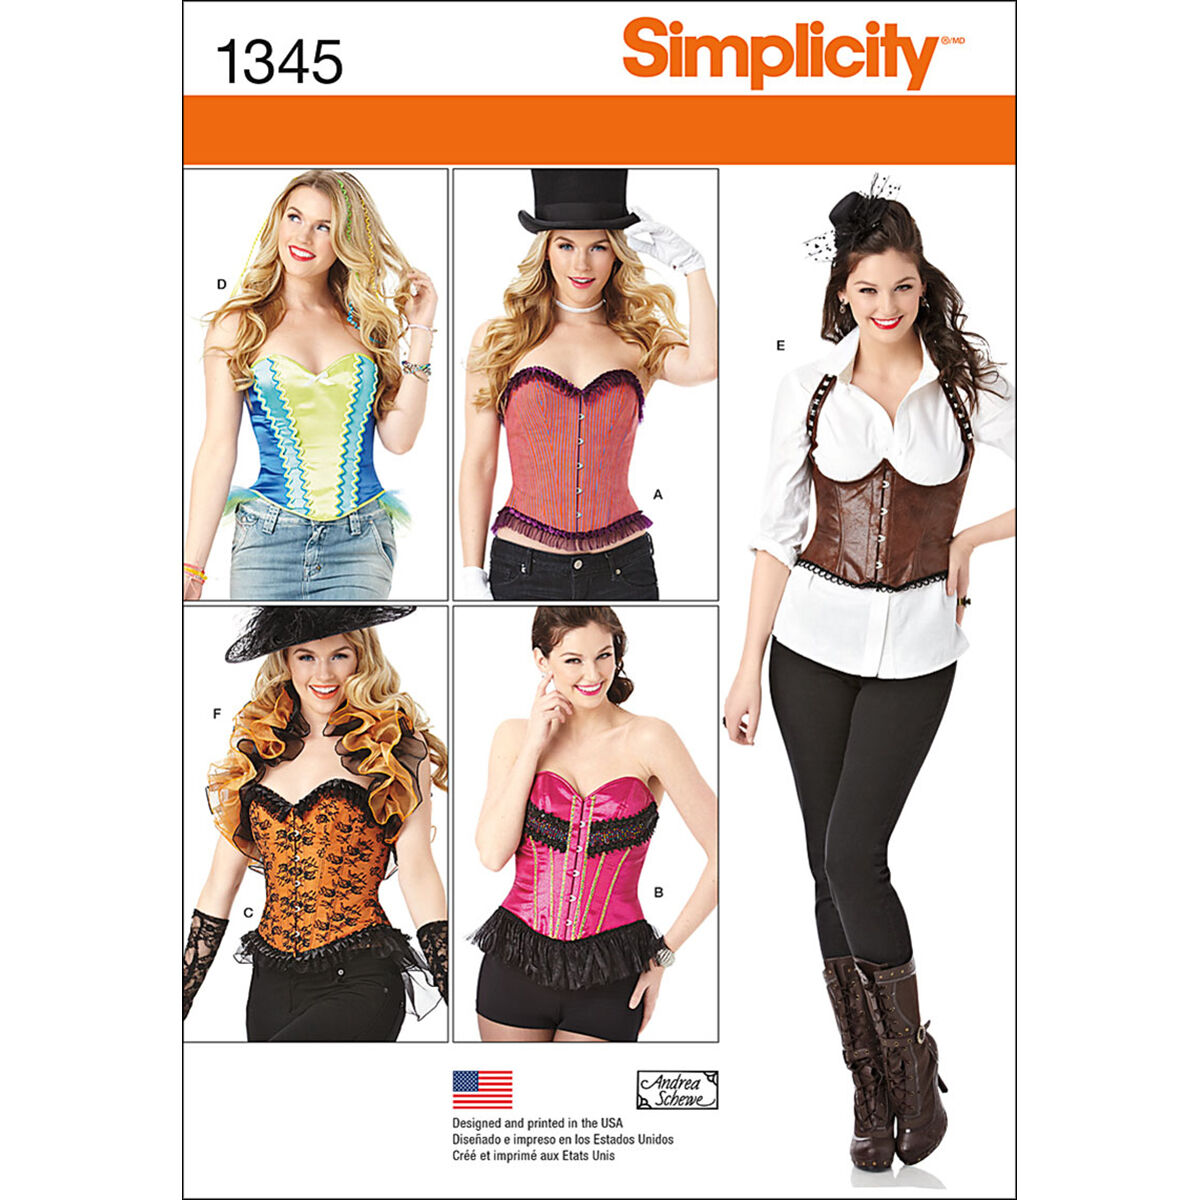 Steampunk Sewing Patterns- Dresses, Coats, Plus Sizes, Men's Patterns Simplicity - Pattern 1345 - Misses Corsets and Ruffled Shrug - Sizes 6-8-10-12 - Costumes - At JOANN Fabrics  Crafts $11.37 AT vintagedancer.com